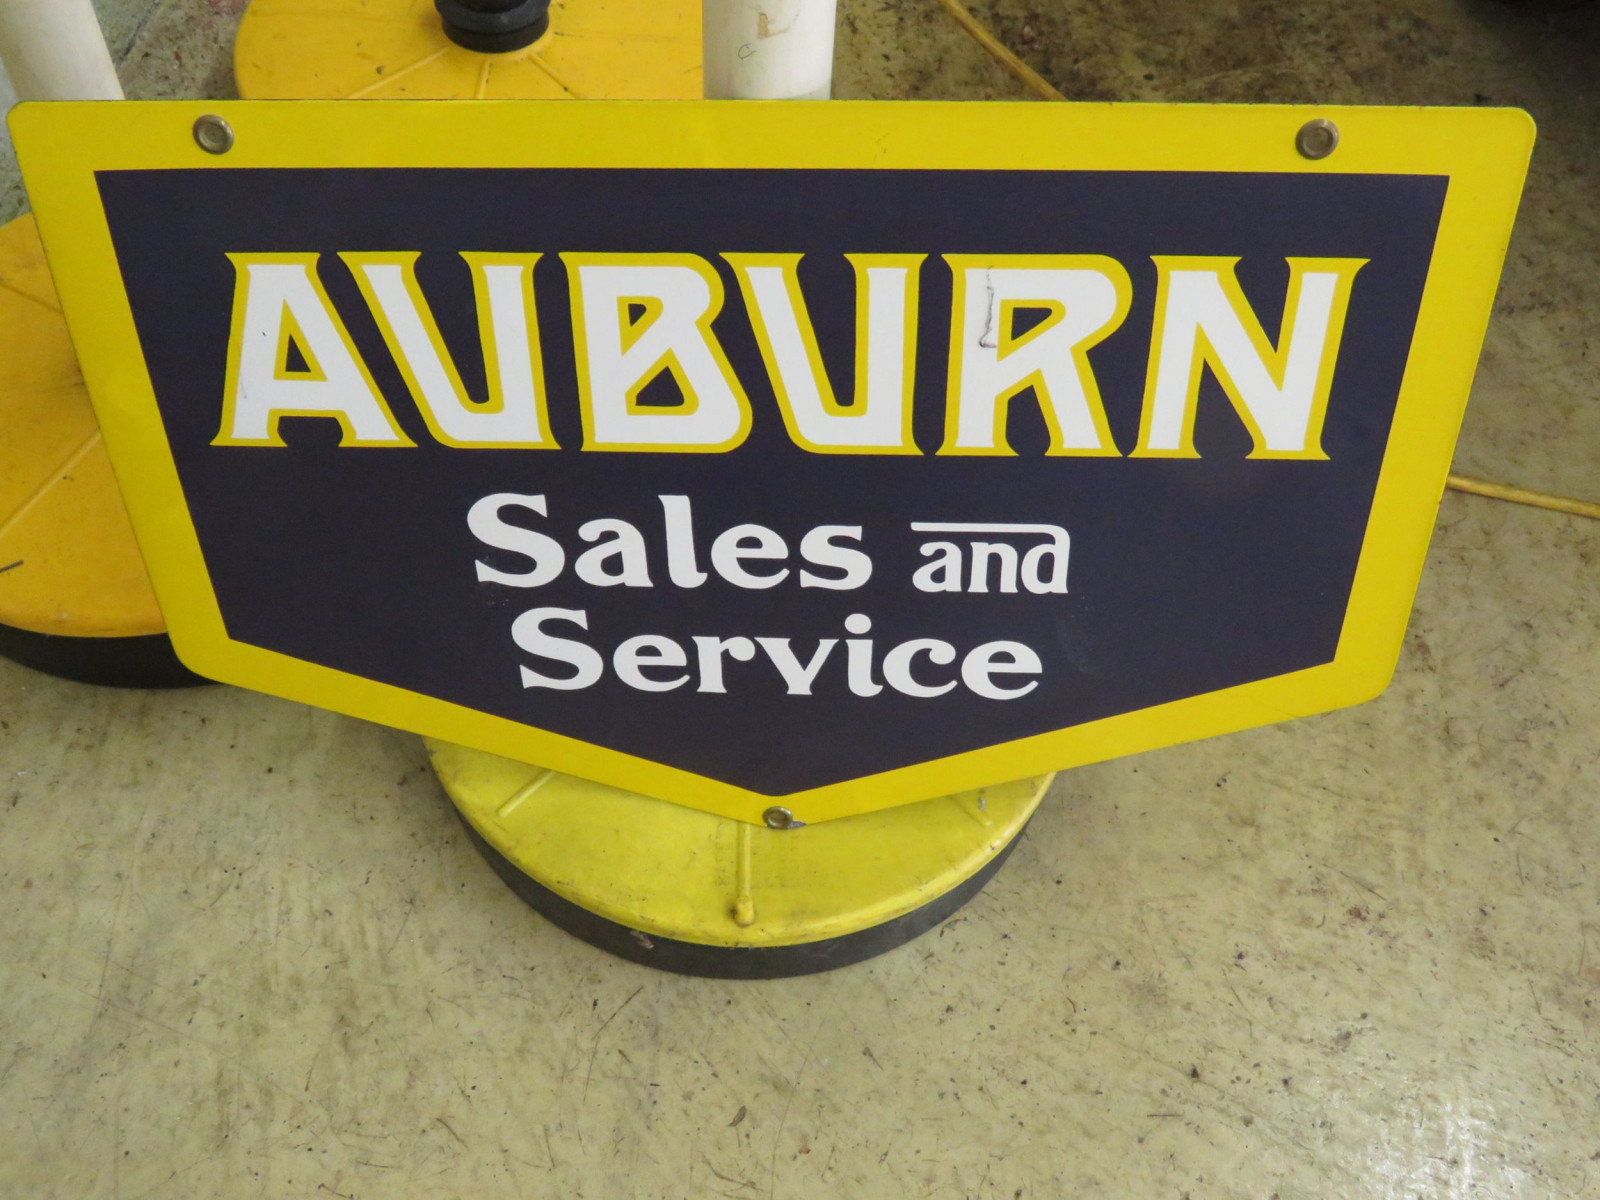 Auburn Sales and Service Porcelain Sign - Image 1